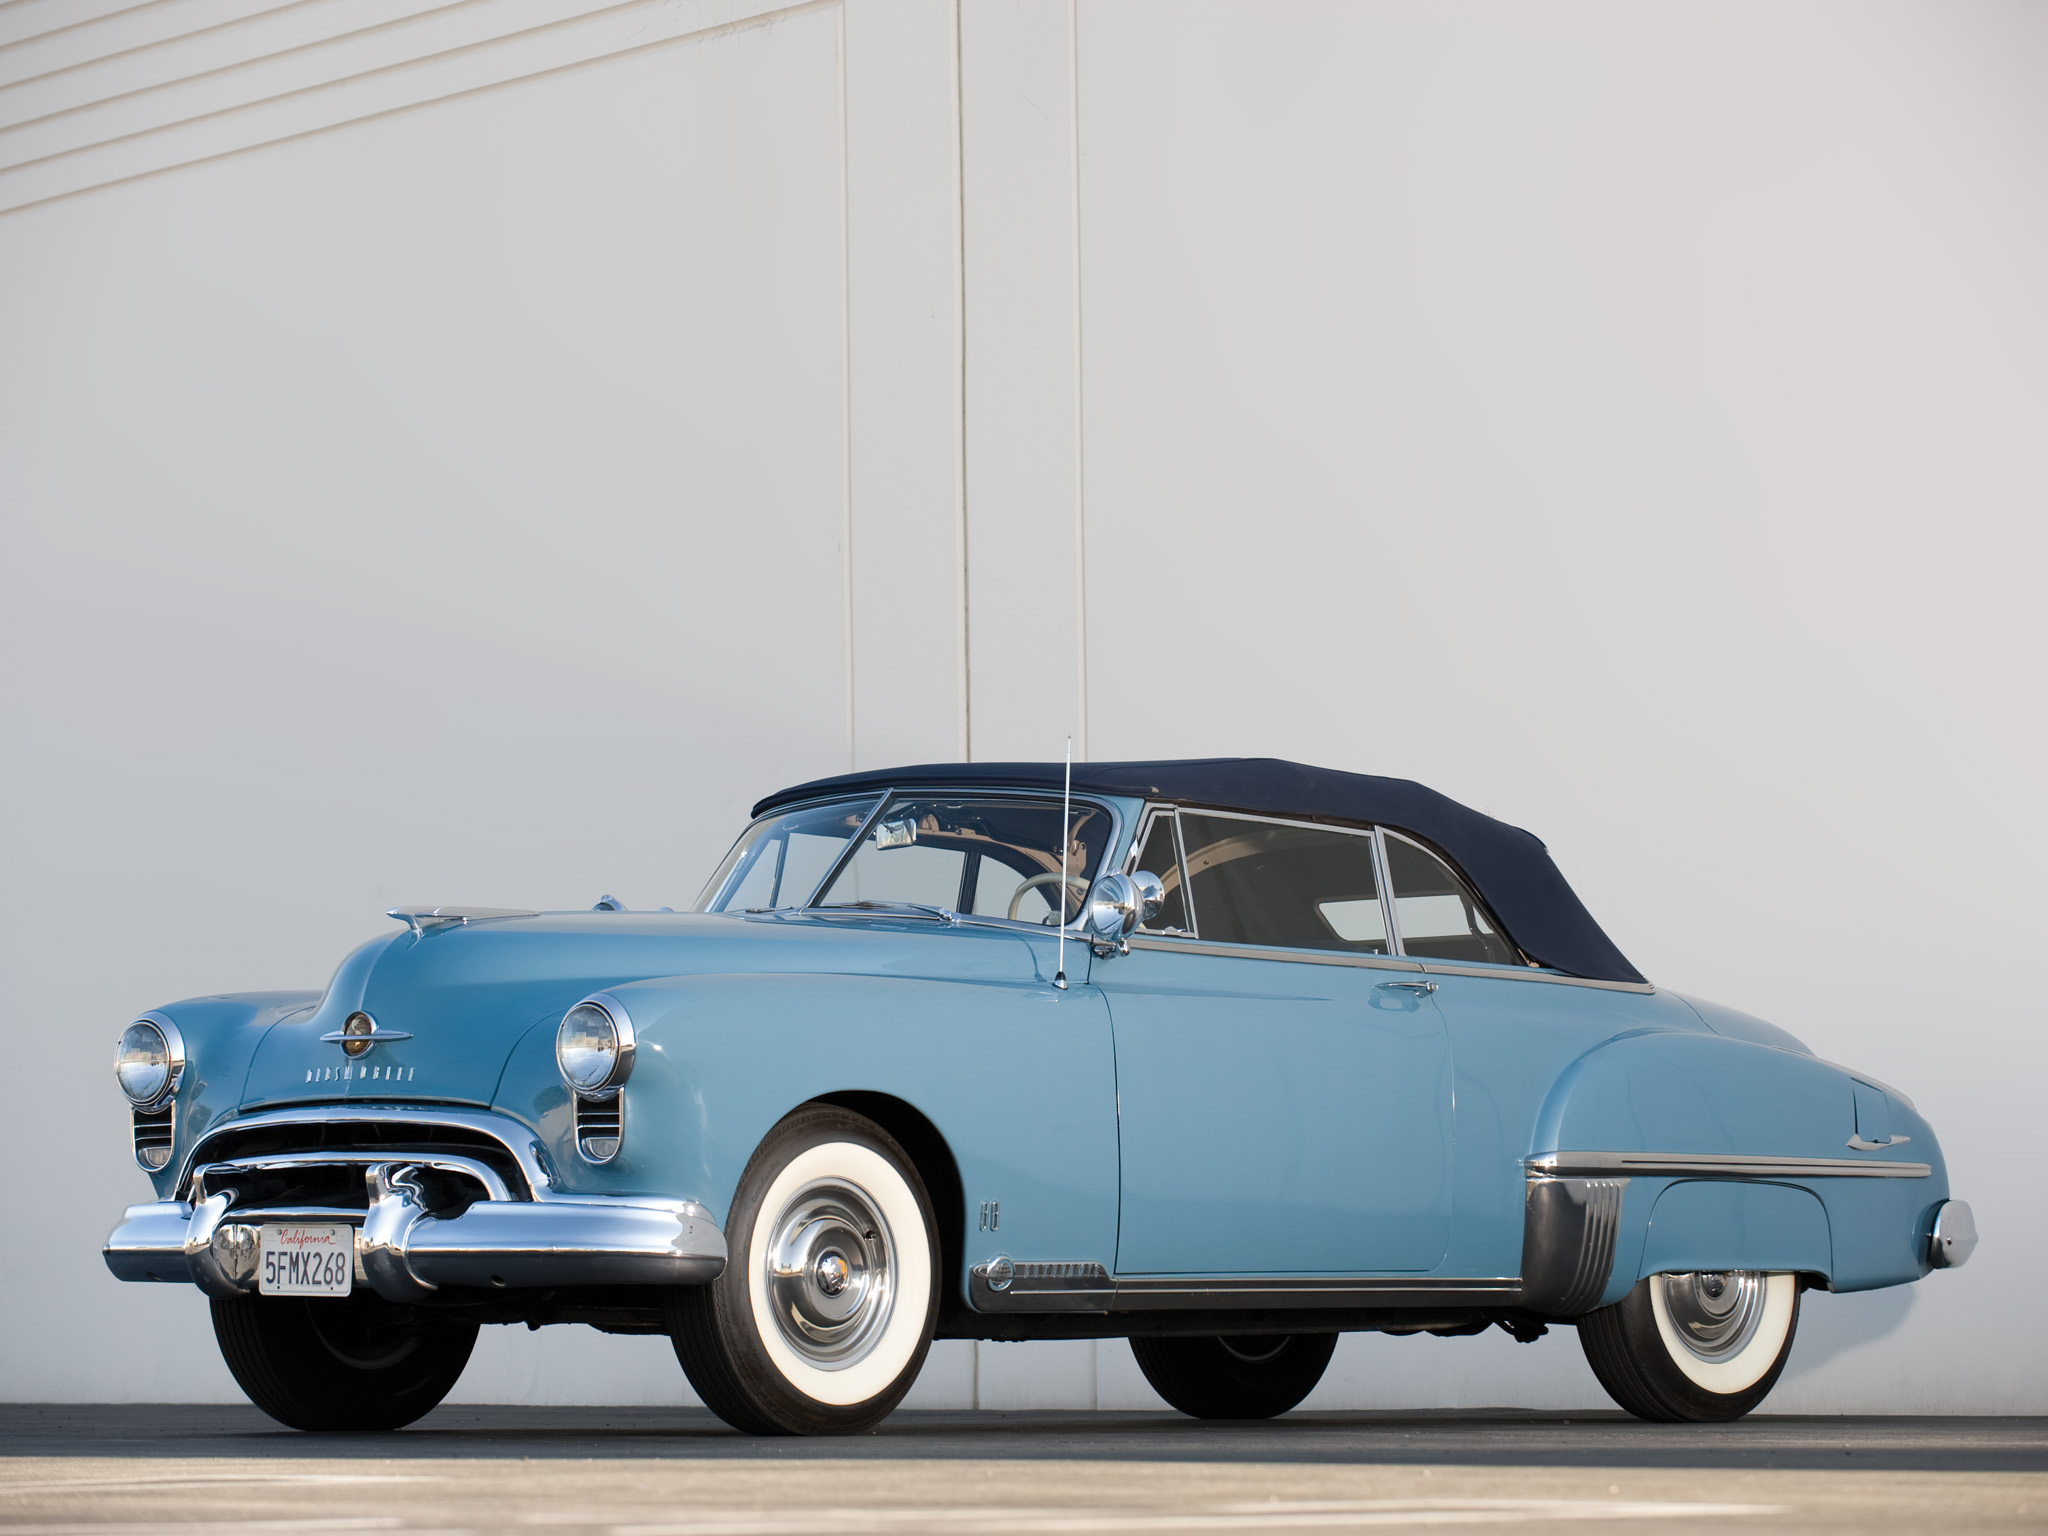 Oldsmobile futuramic photo - 2